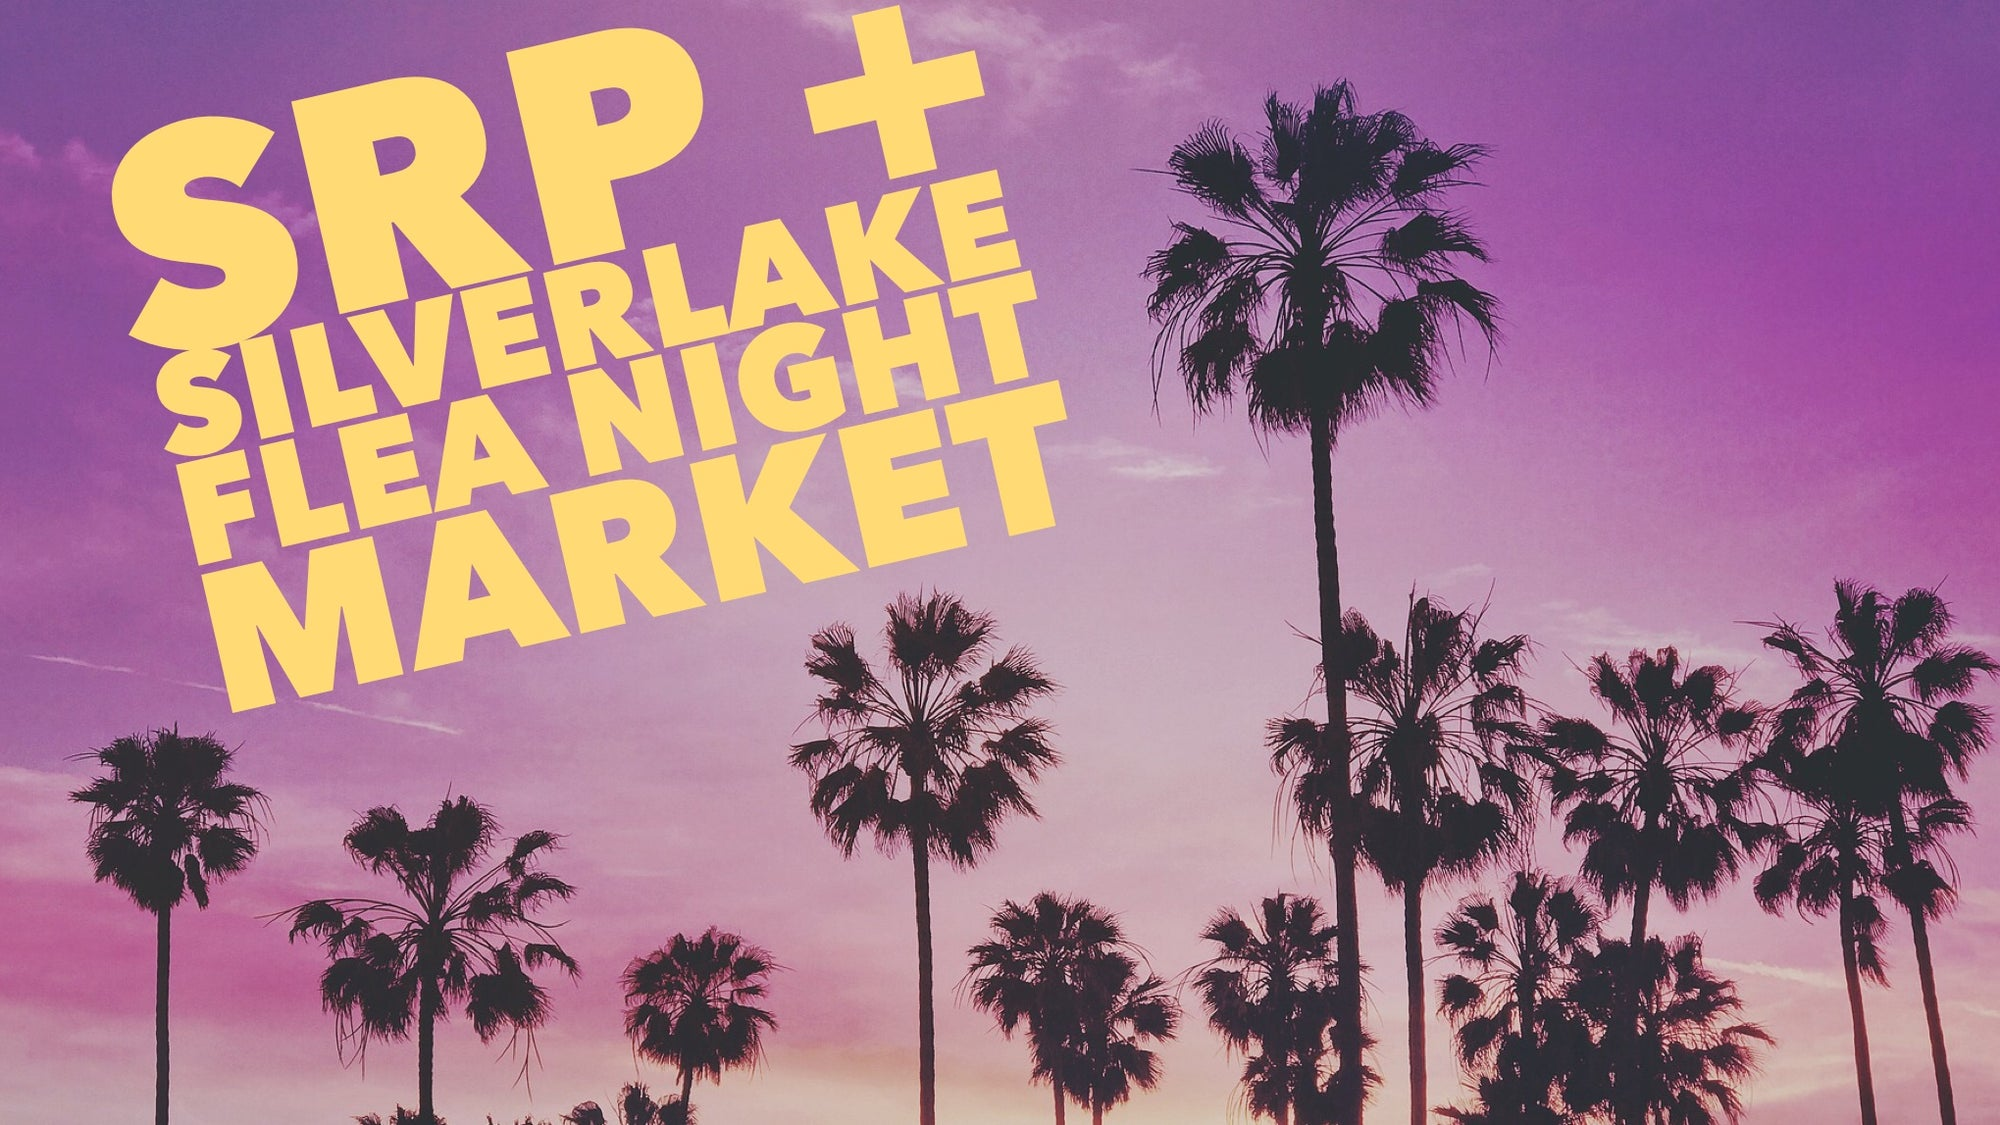 Sparkle Rock Pop Silverlake Flea Night Market Los Angeles